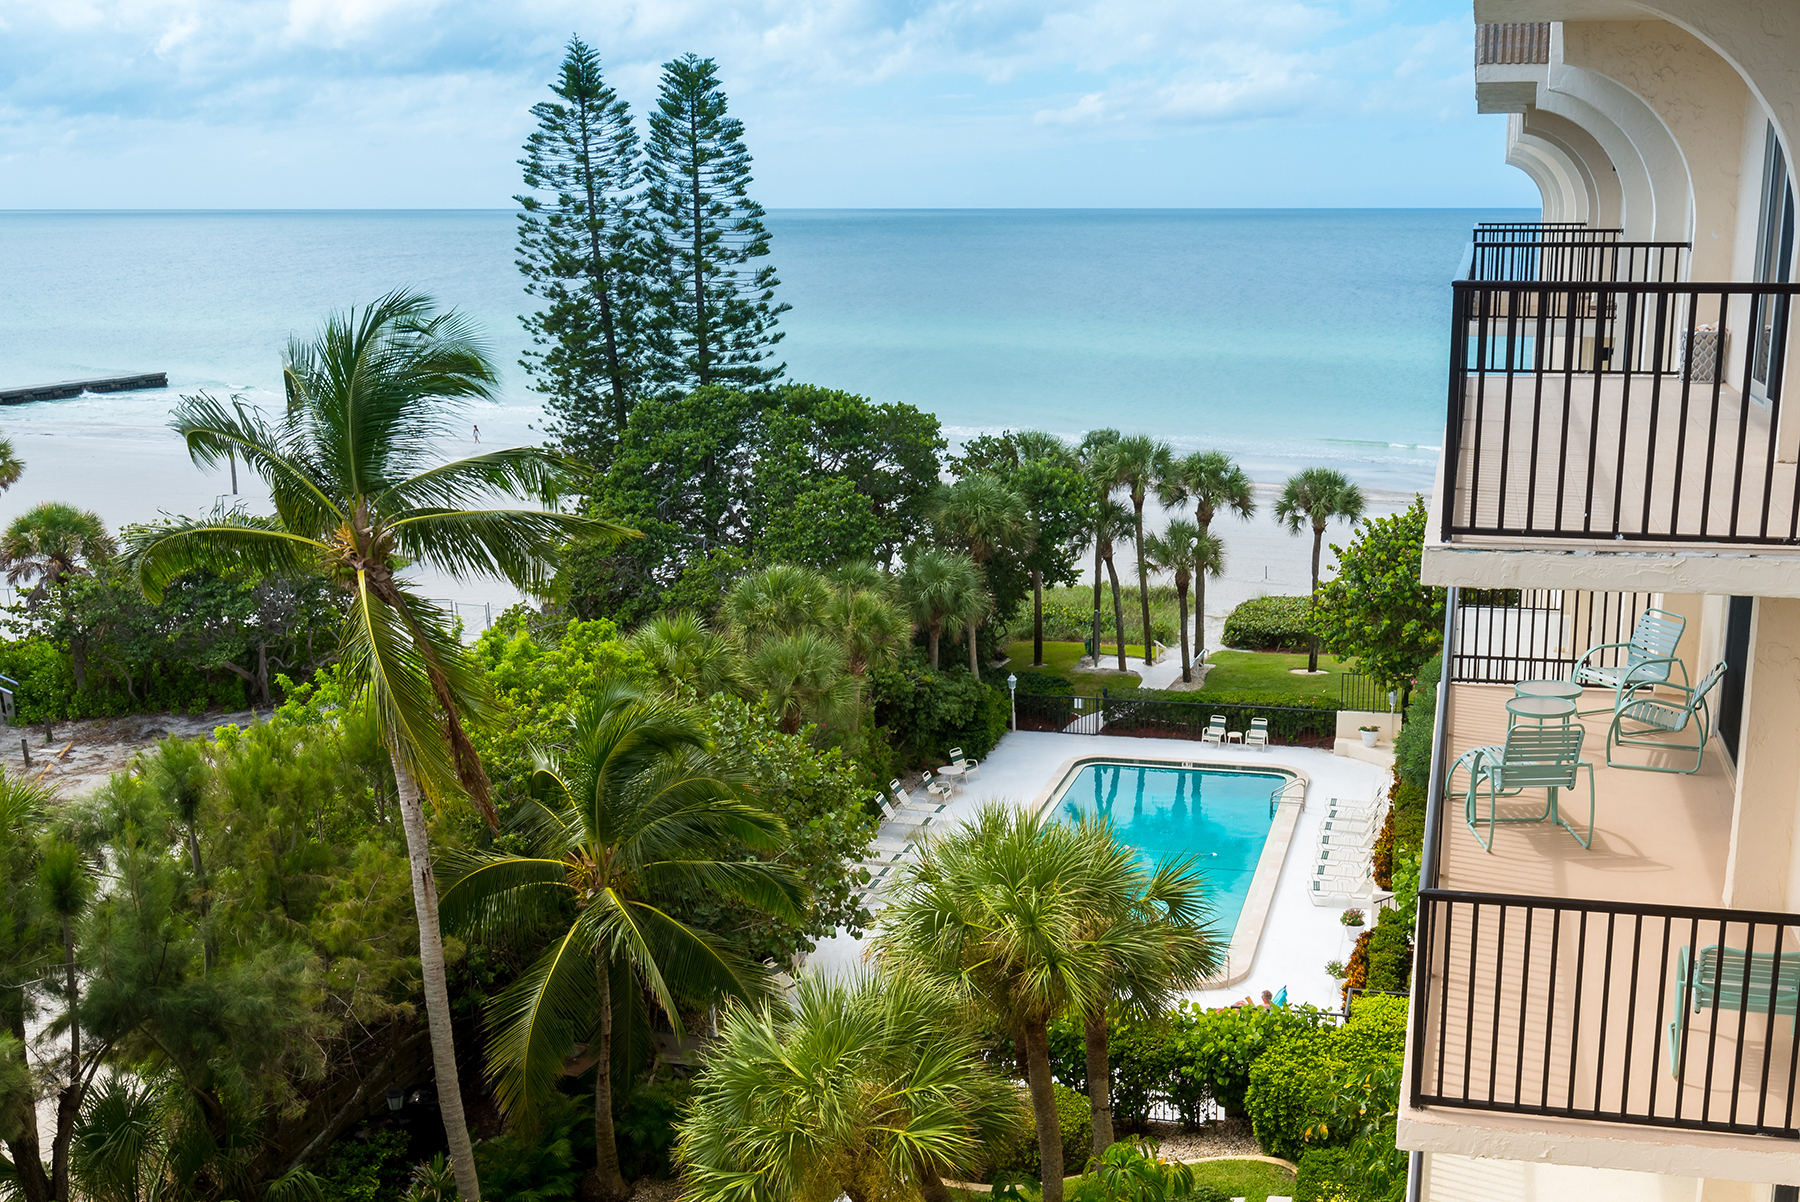 Condominium for Sale at LONGBOAT KEY 1701 Gulf Of Mexico Dr 604 Longboat Key, Florida, 34228 United States